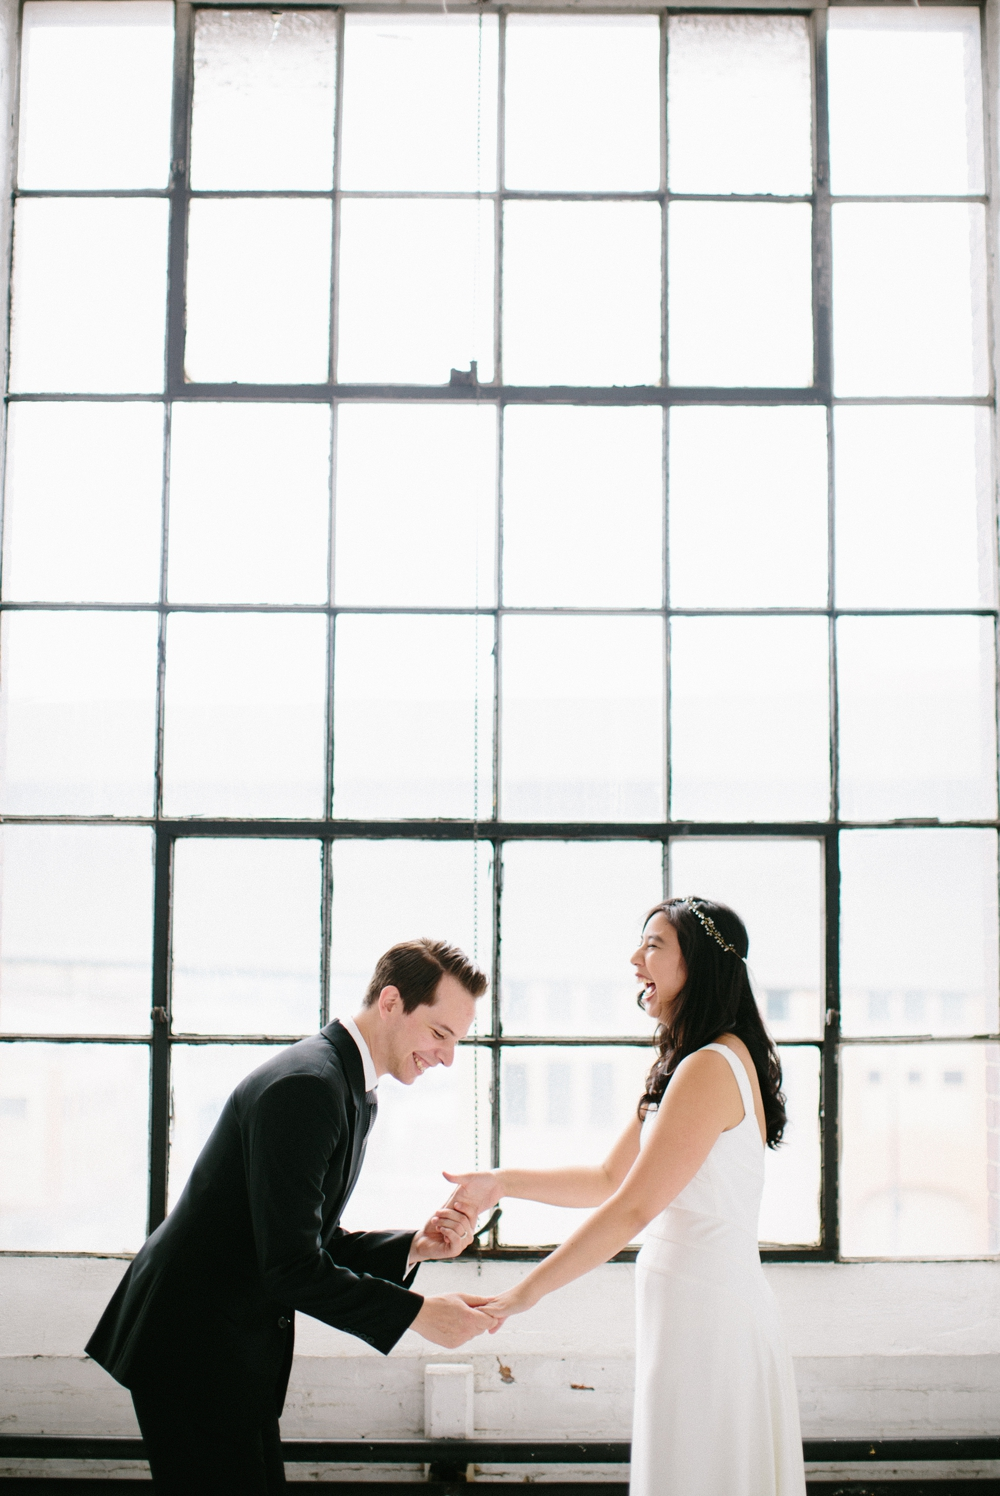 Seattle_Elopement_courthouse_wedding_Photographer 6.jpg